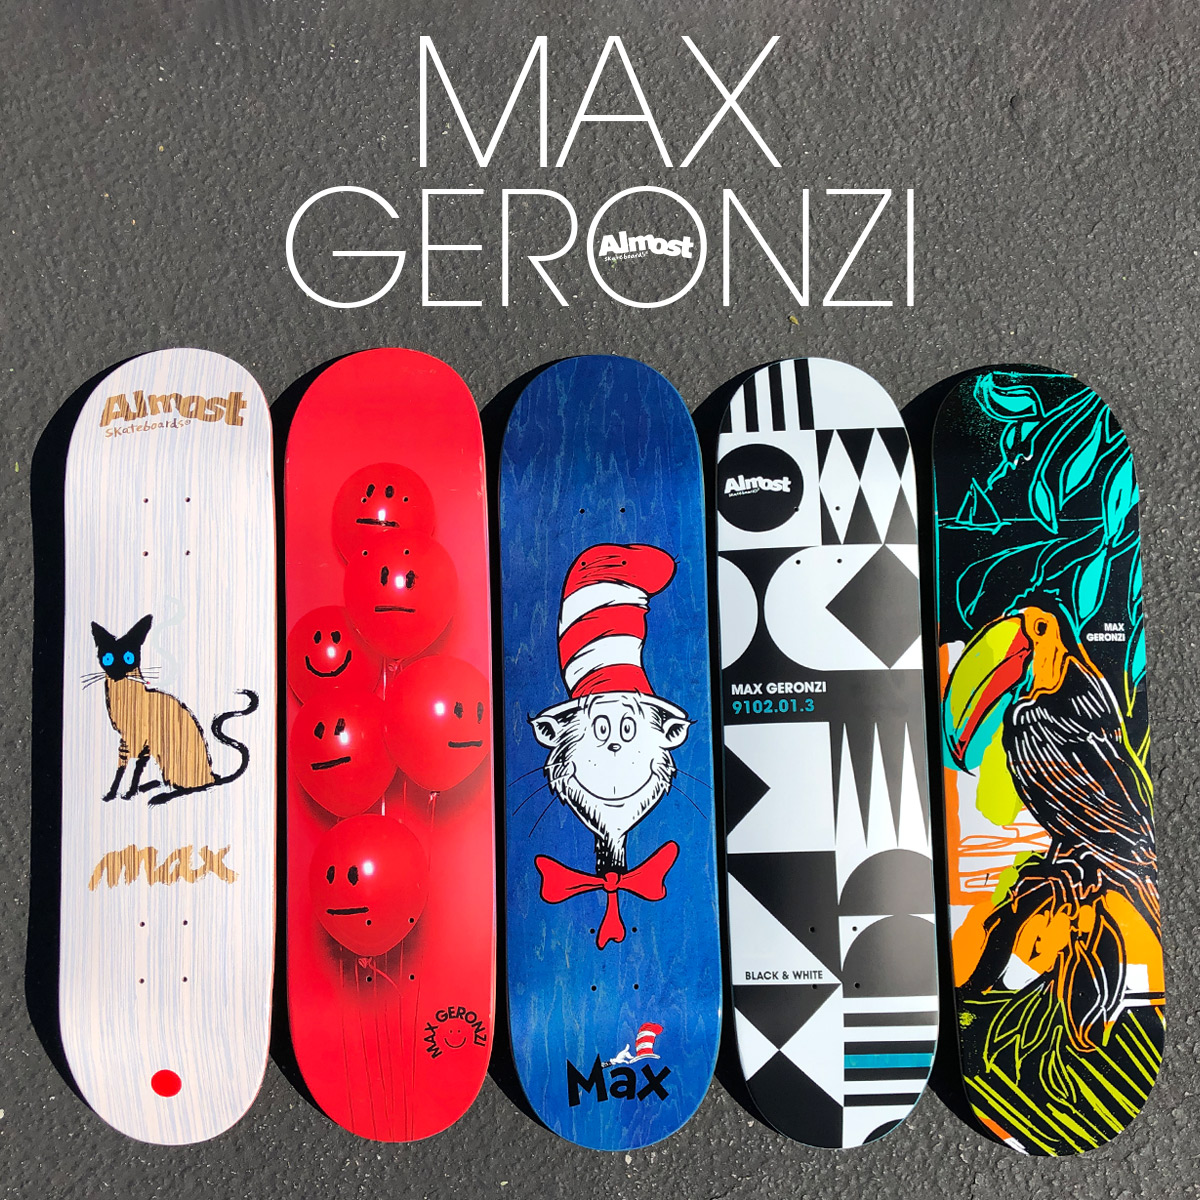 Almost_Skateboards_Max_Geronzi_Pro_Decks.jpg